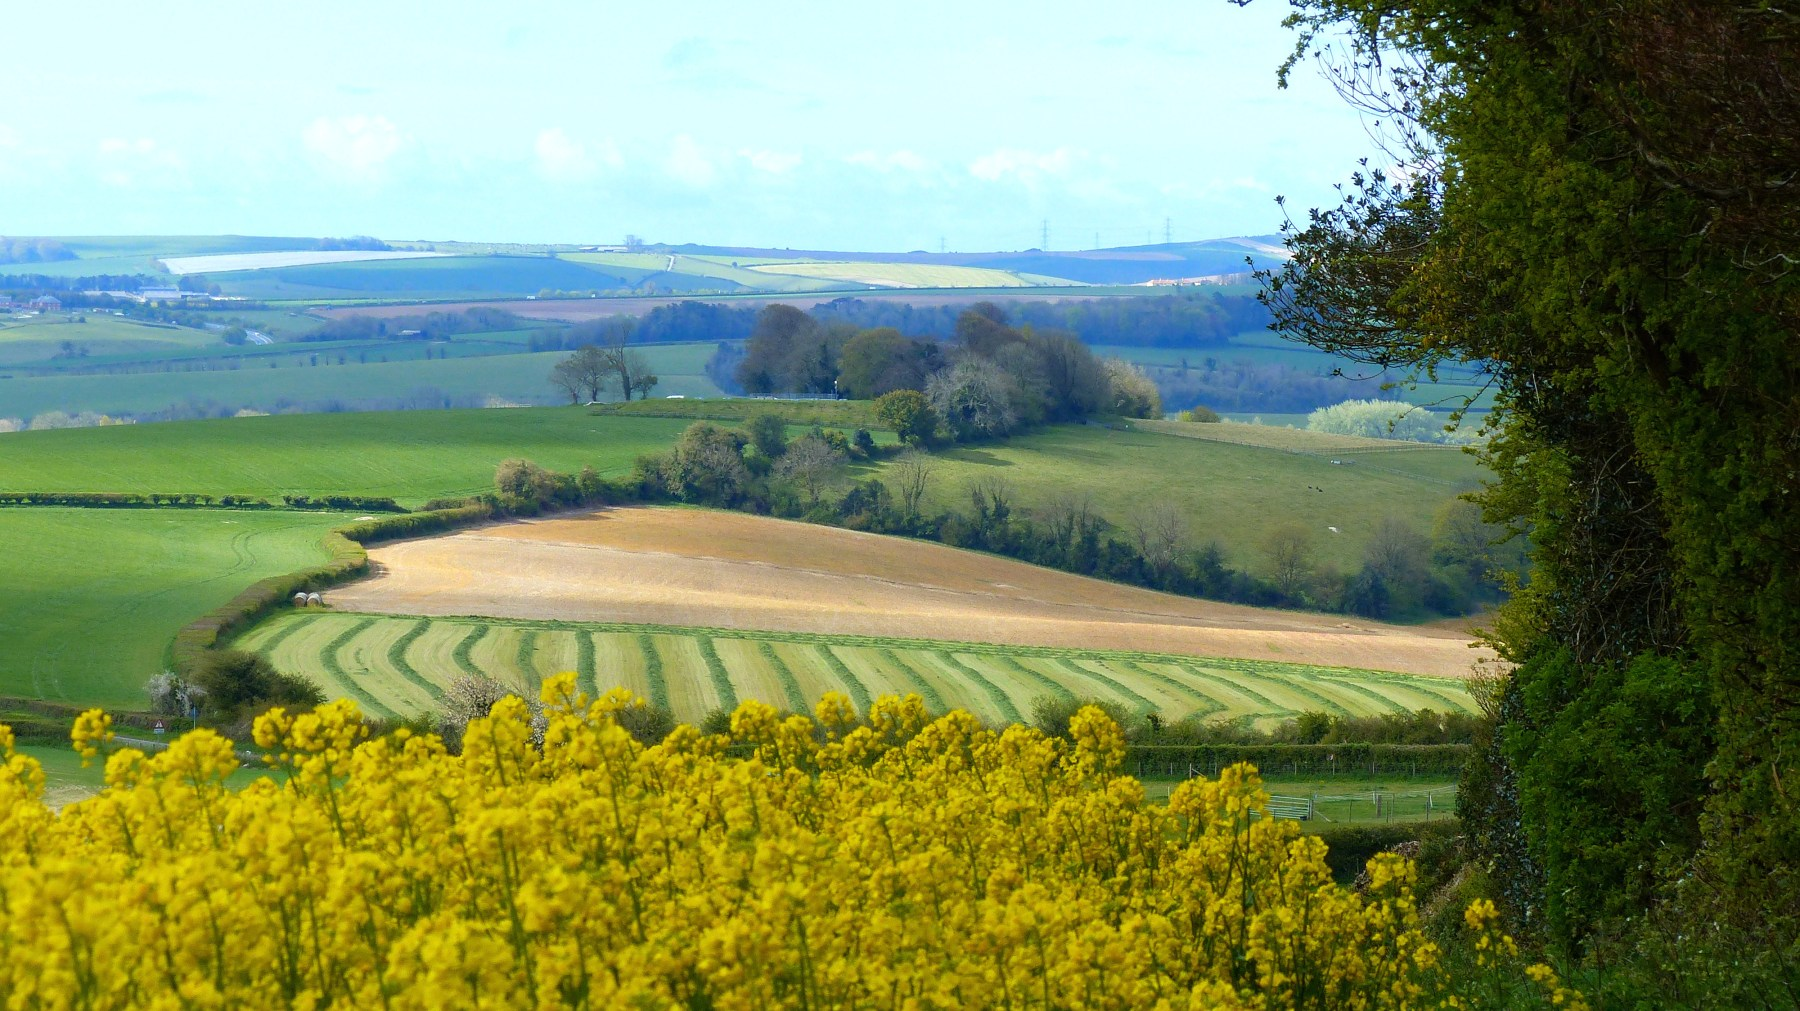 Countryside view with fields, hedgerows and trees.